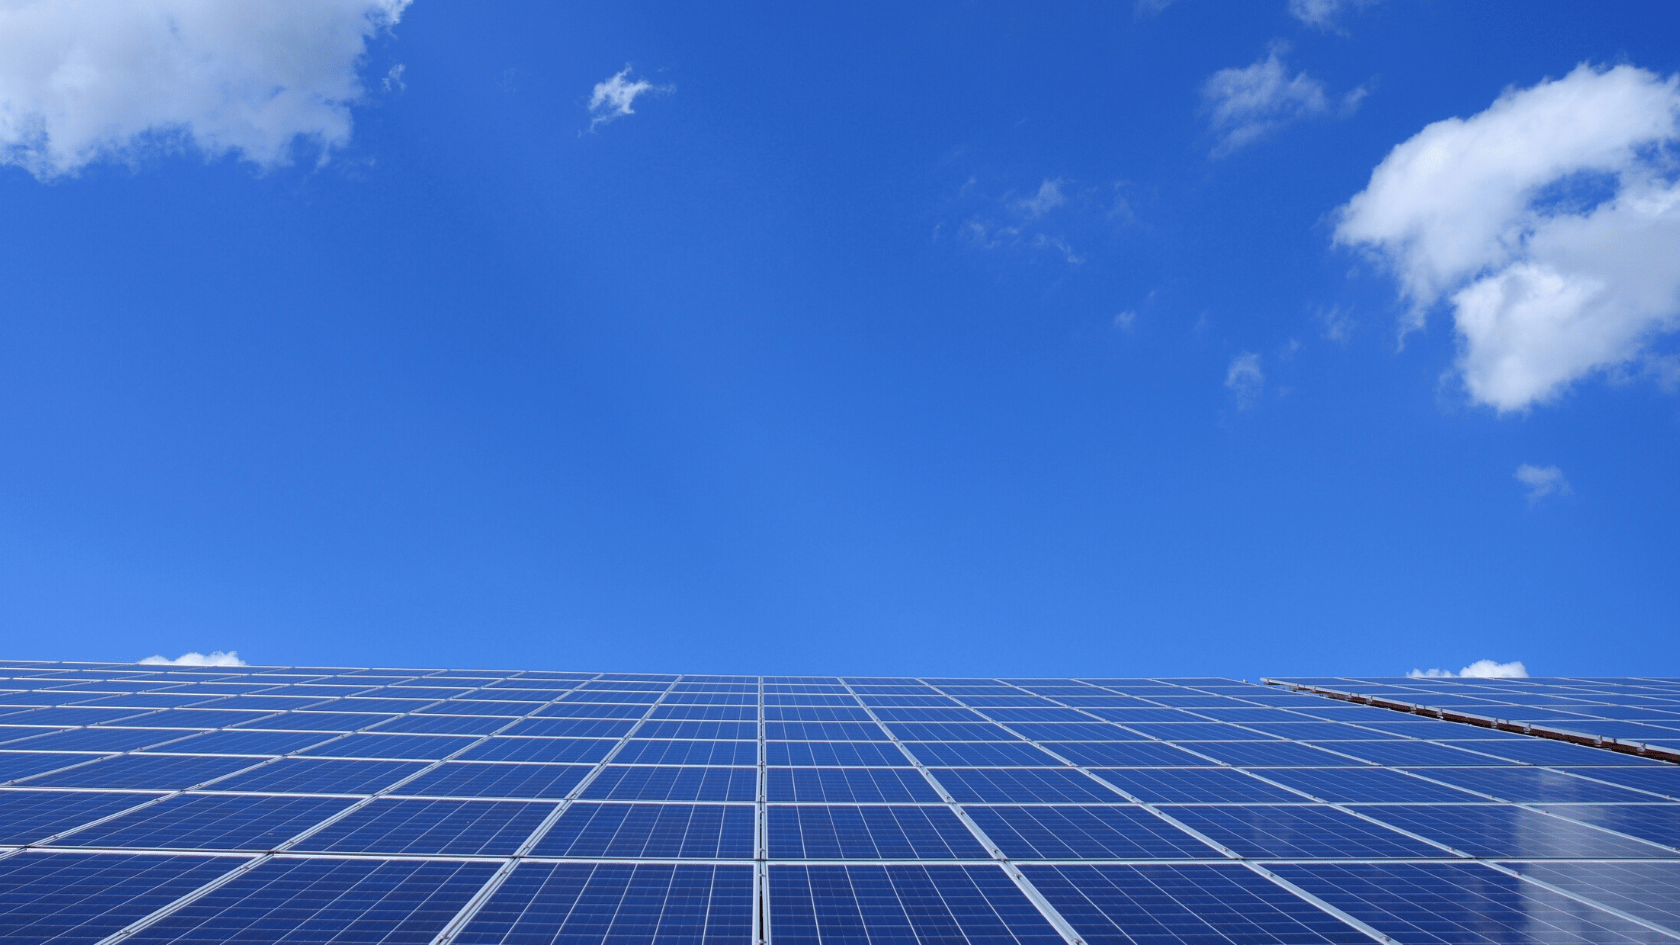 Solar panels are the future of energy